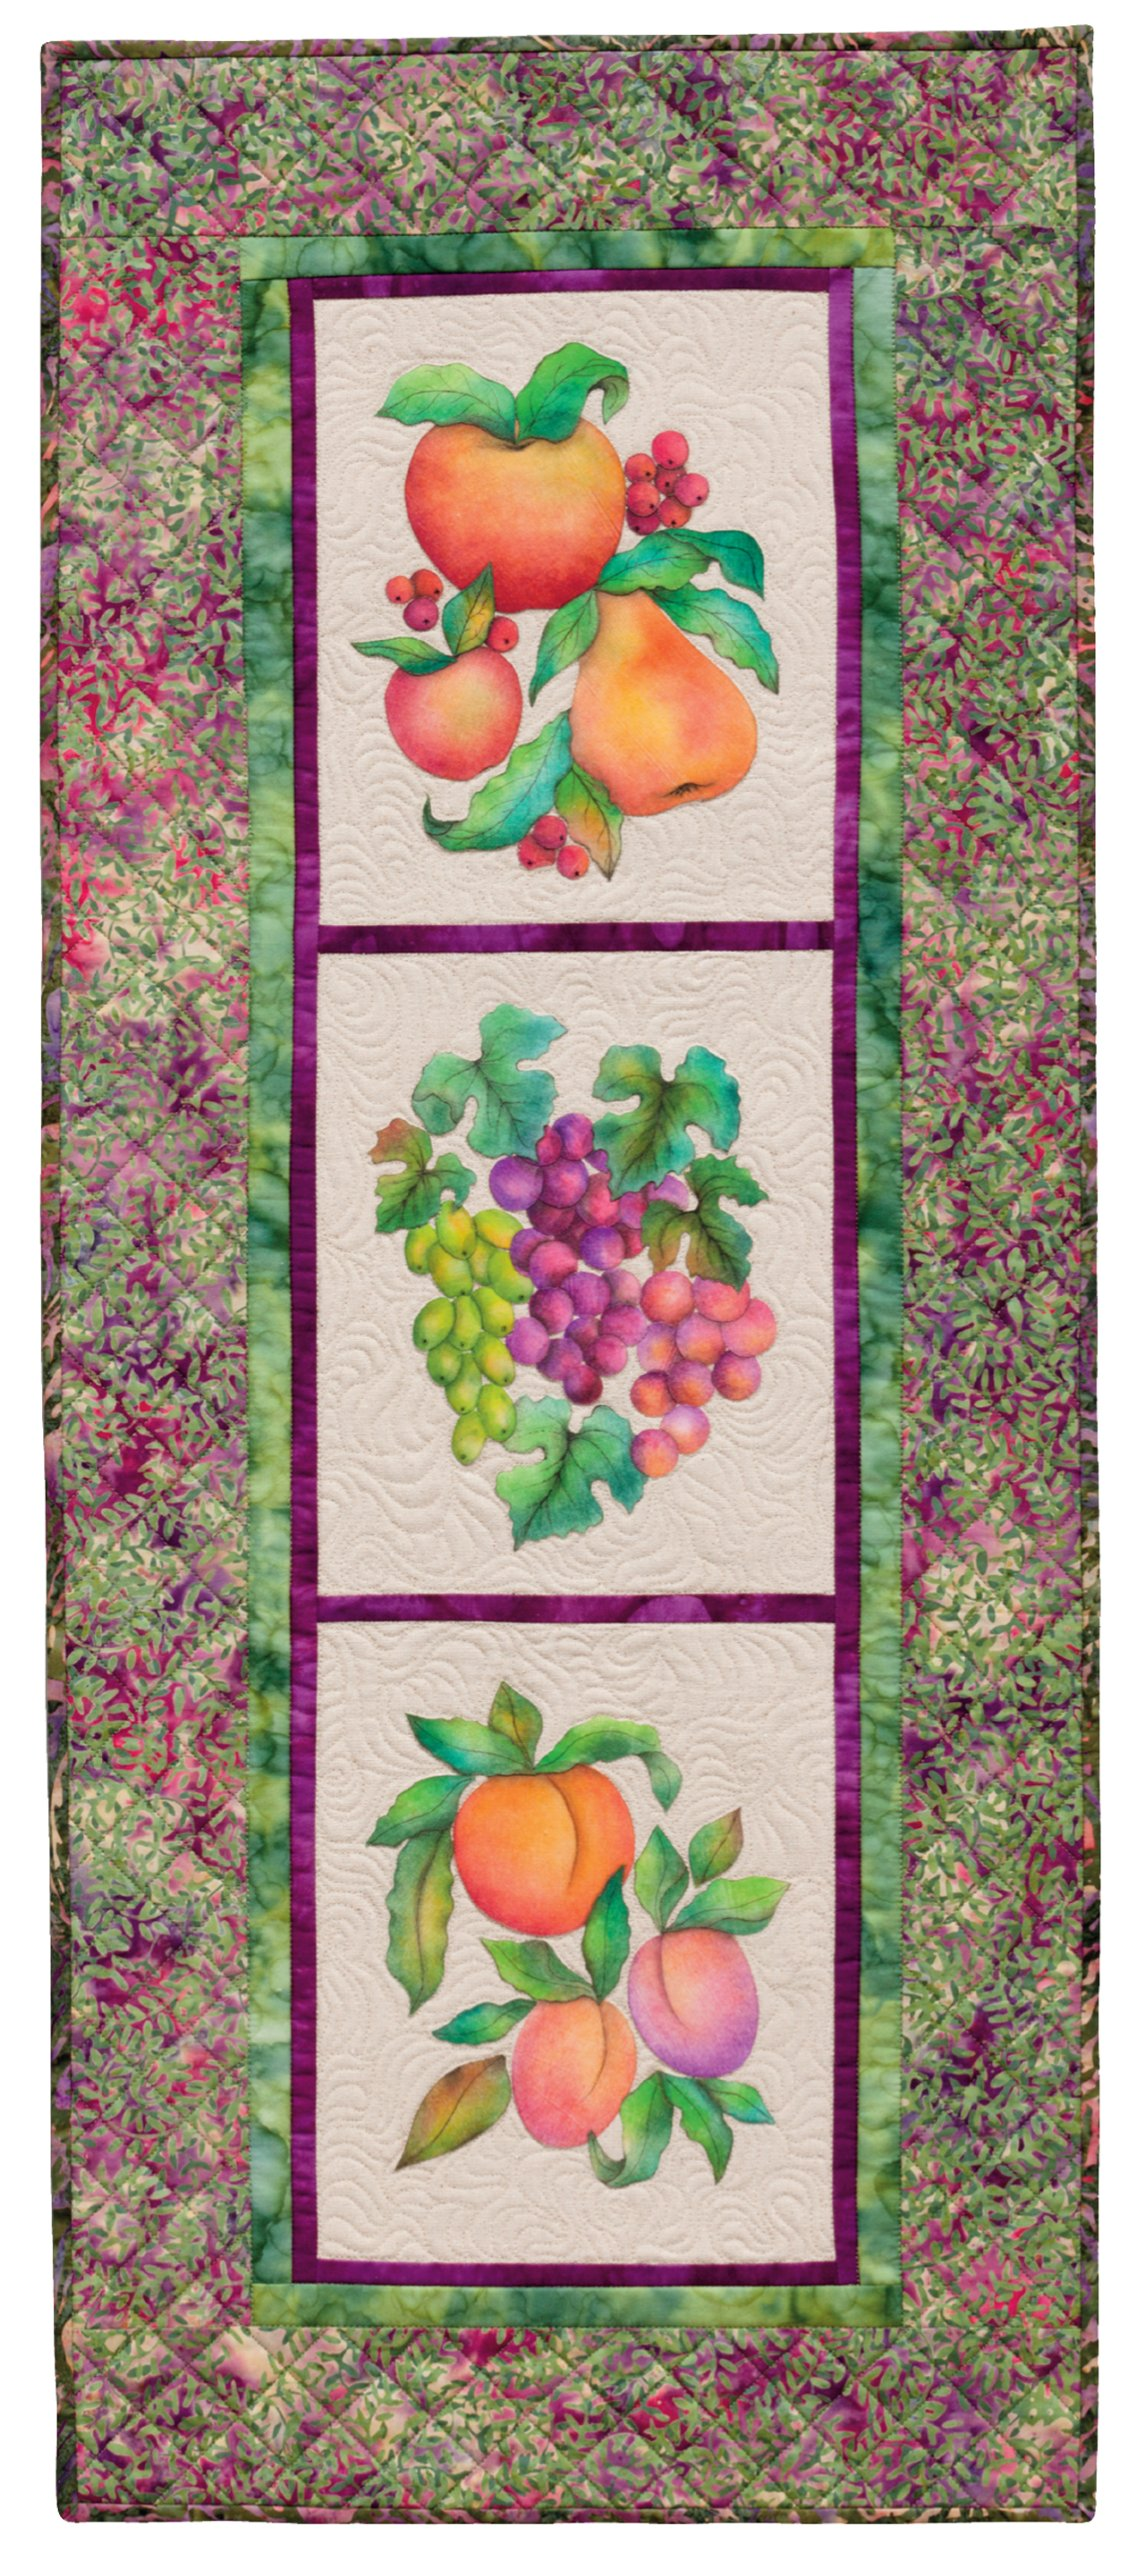 Creative Quilts from Your Crayon Box: Melt-n-Blend Meets Fusible Applique by That Patchwork Place (Image #7)